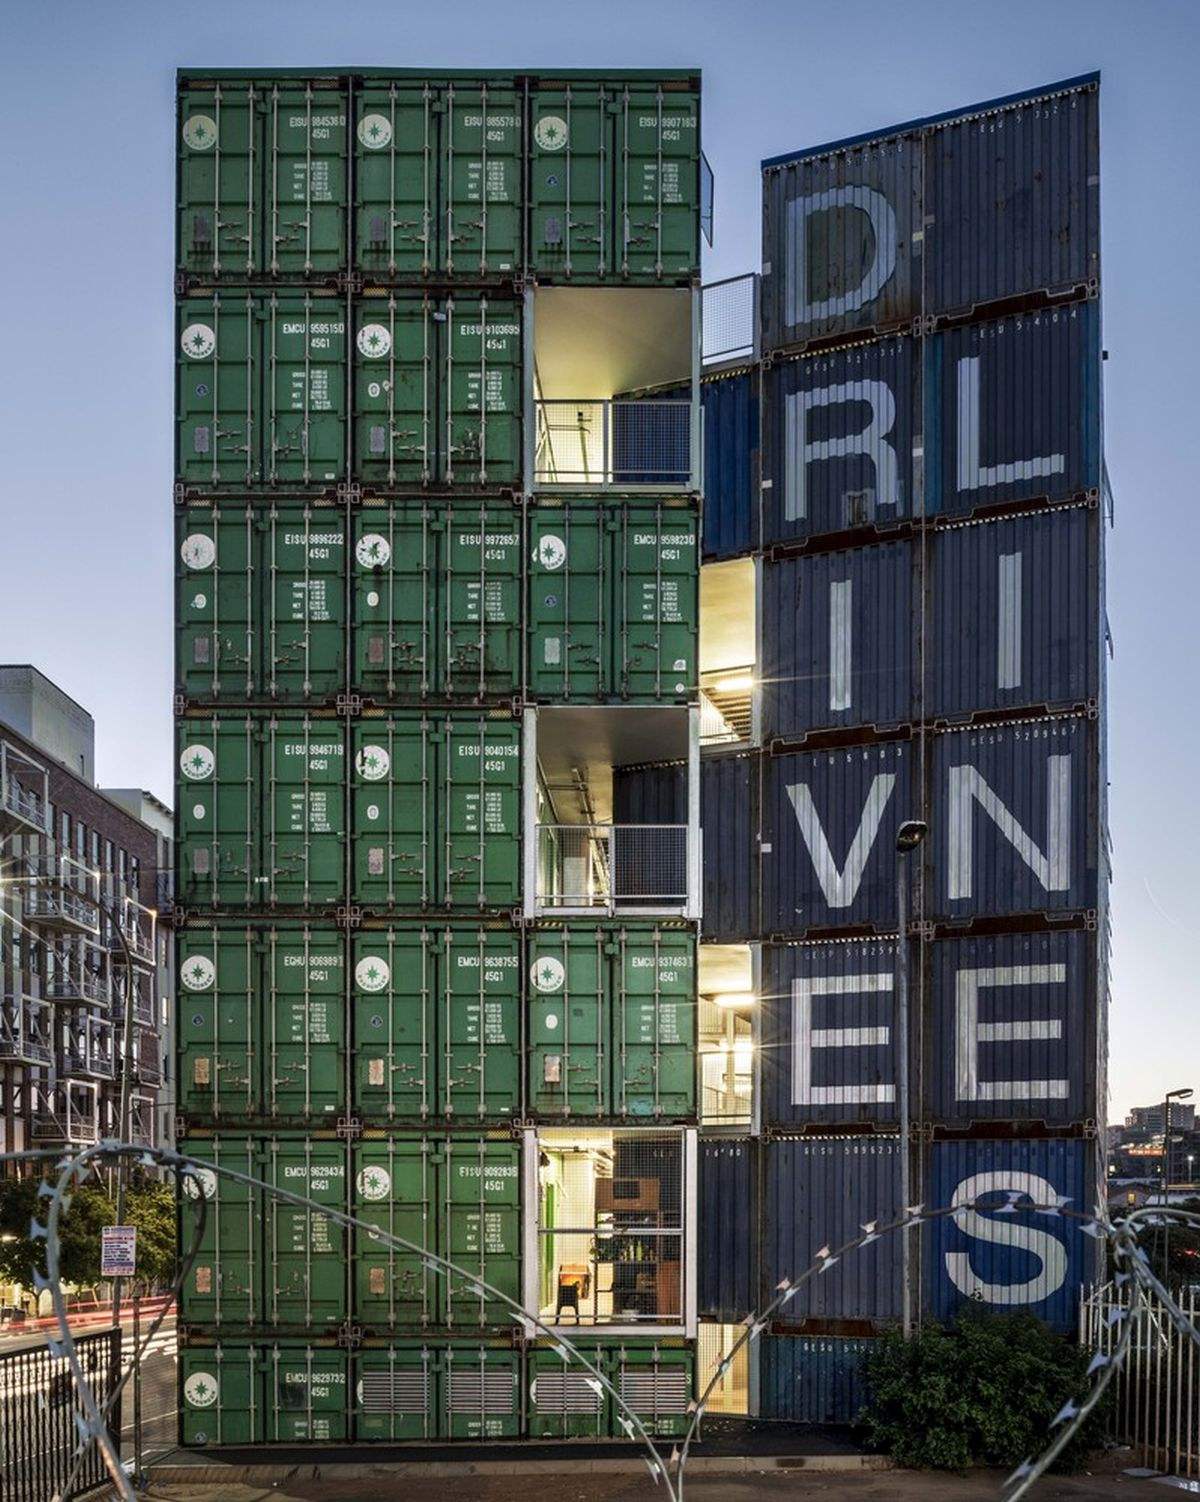 Green and blue reclaimed shipping containers are stacked forming six residential floors and a multi-purpose ground level